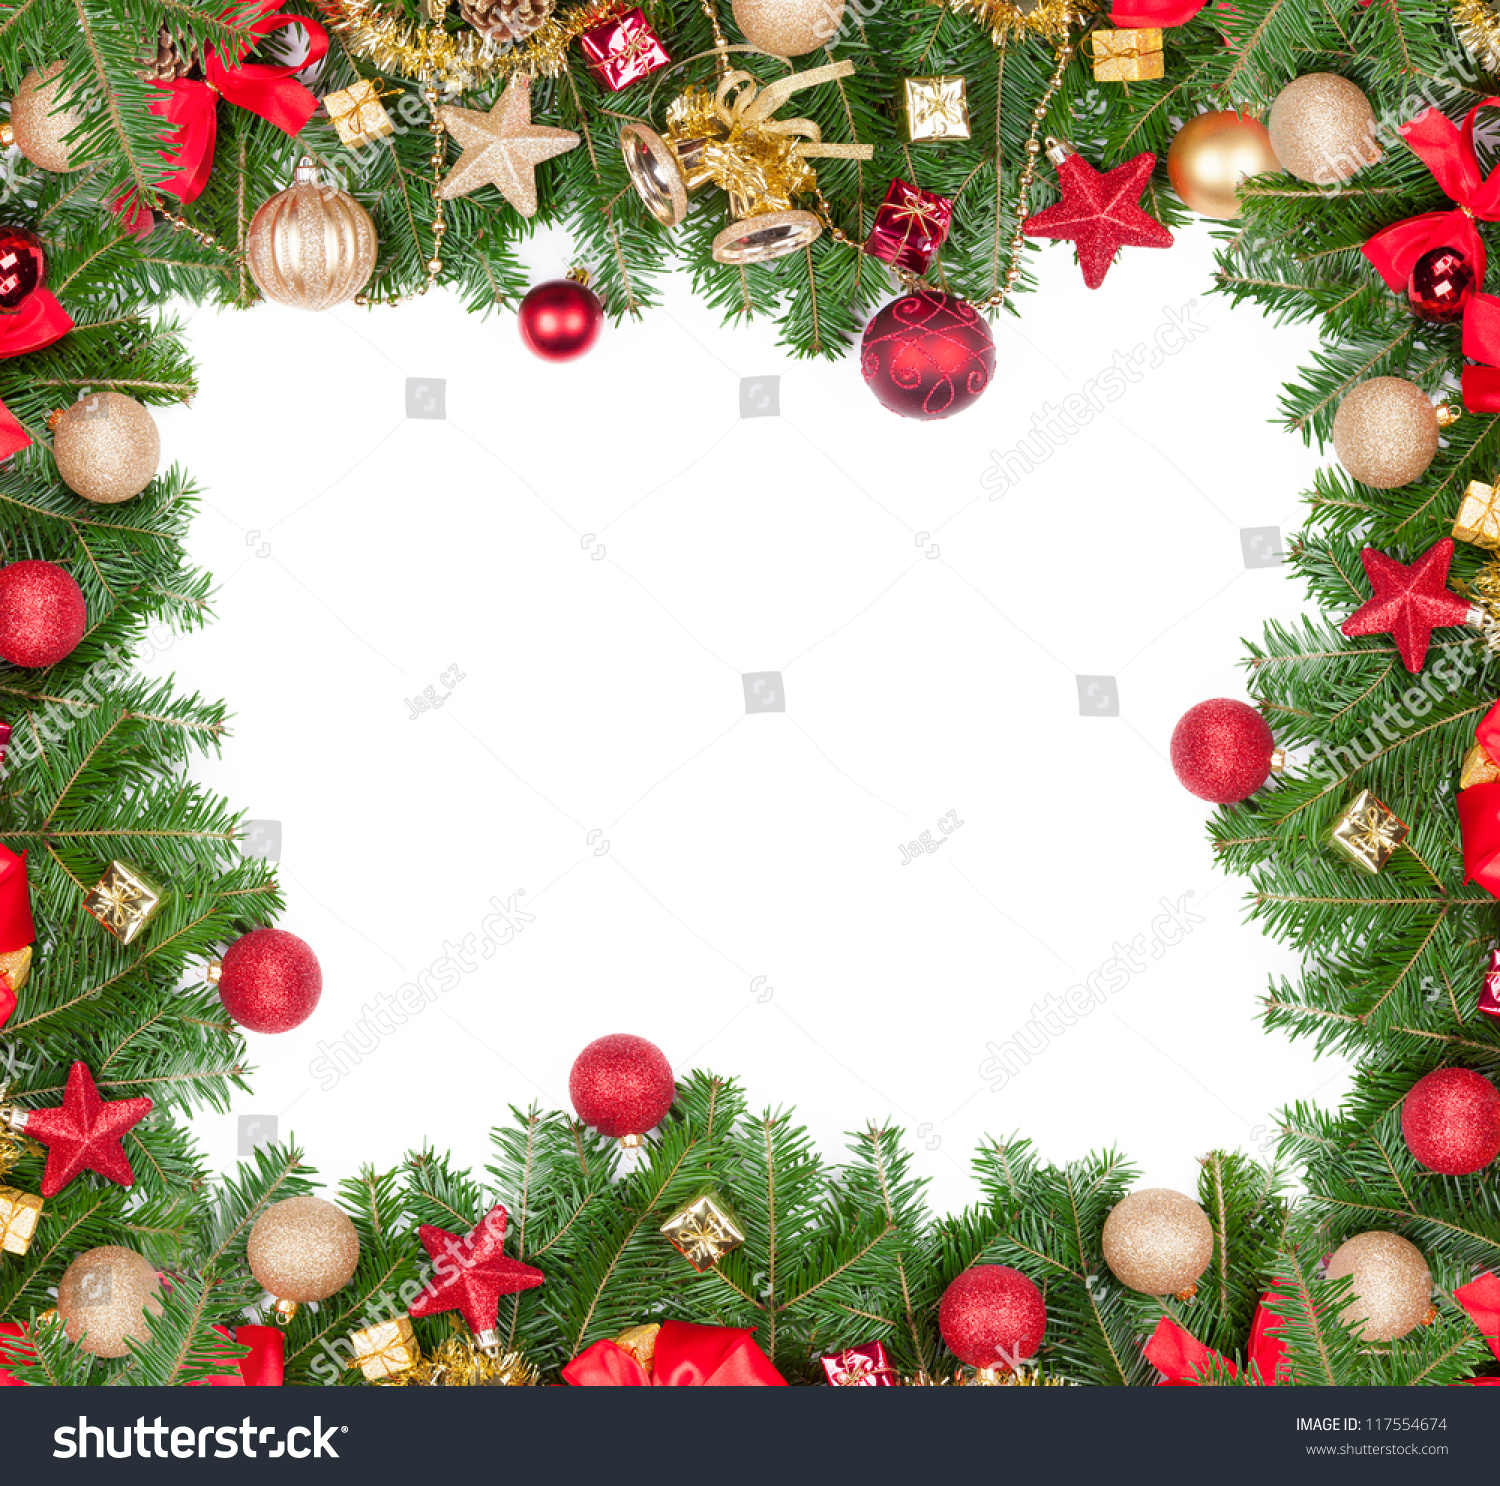 Christmas Frame Free Space Text Stock Photo (Edit Now)- Shutterstock